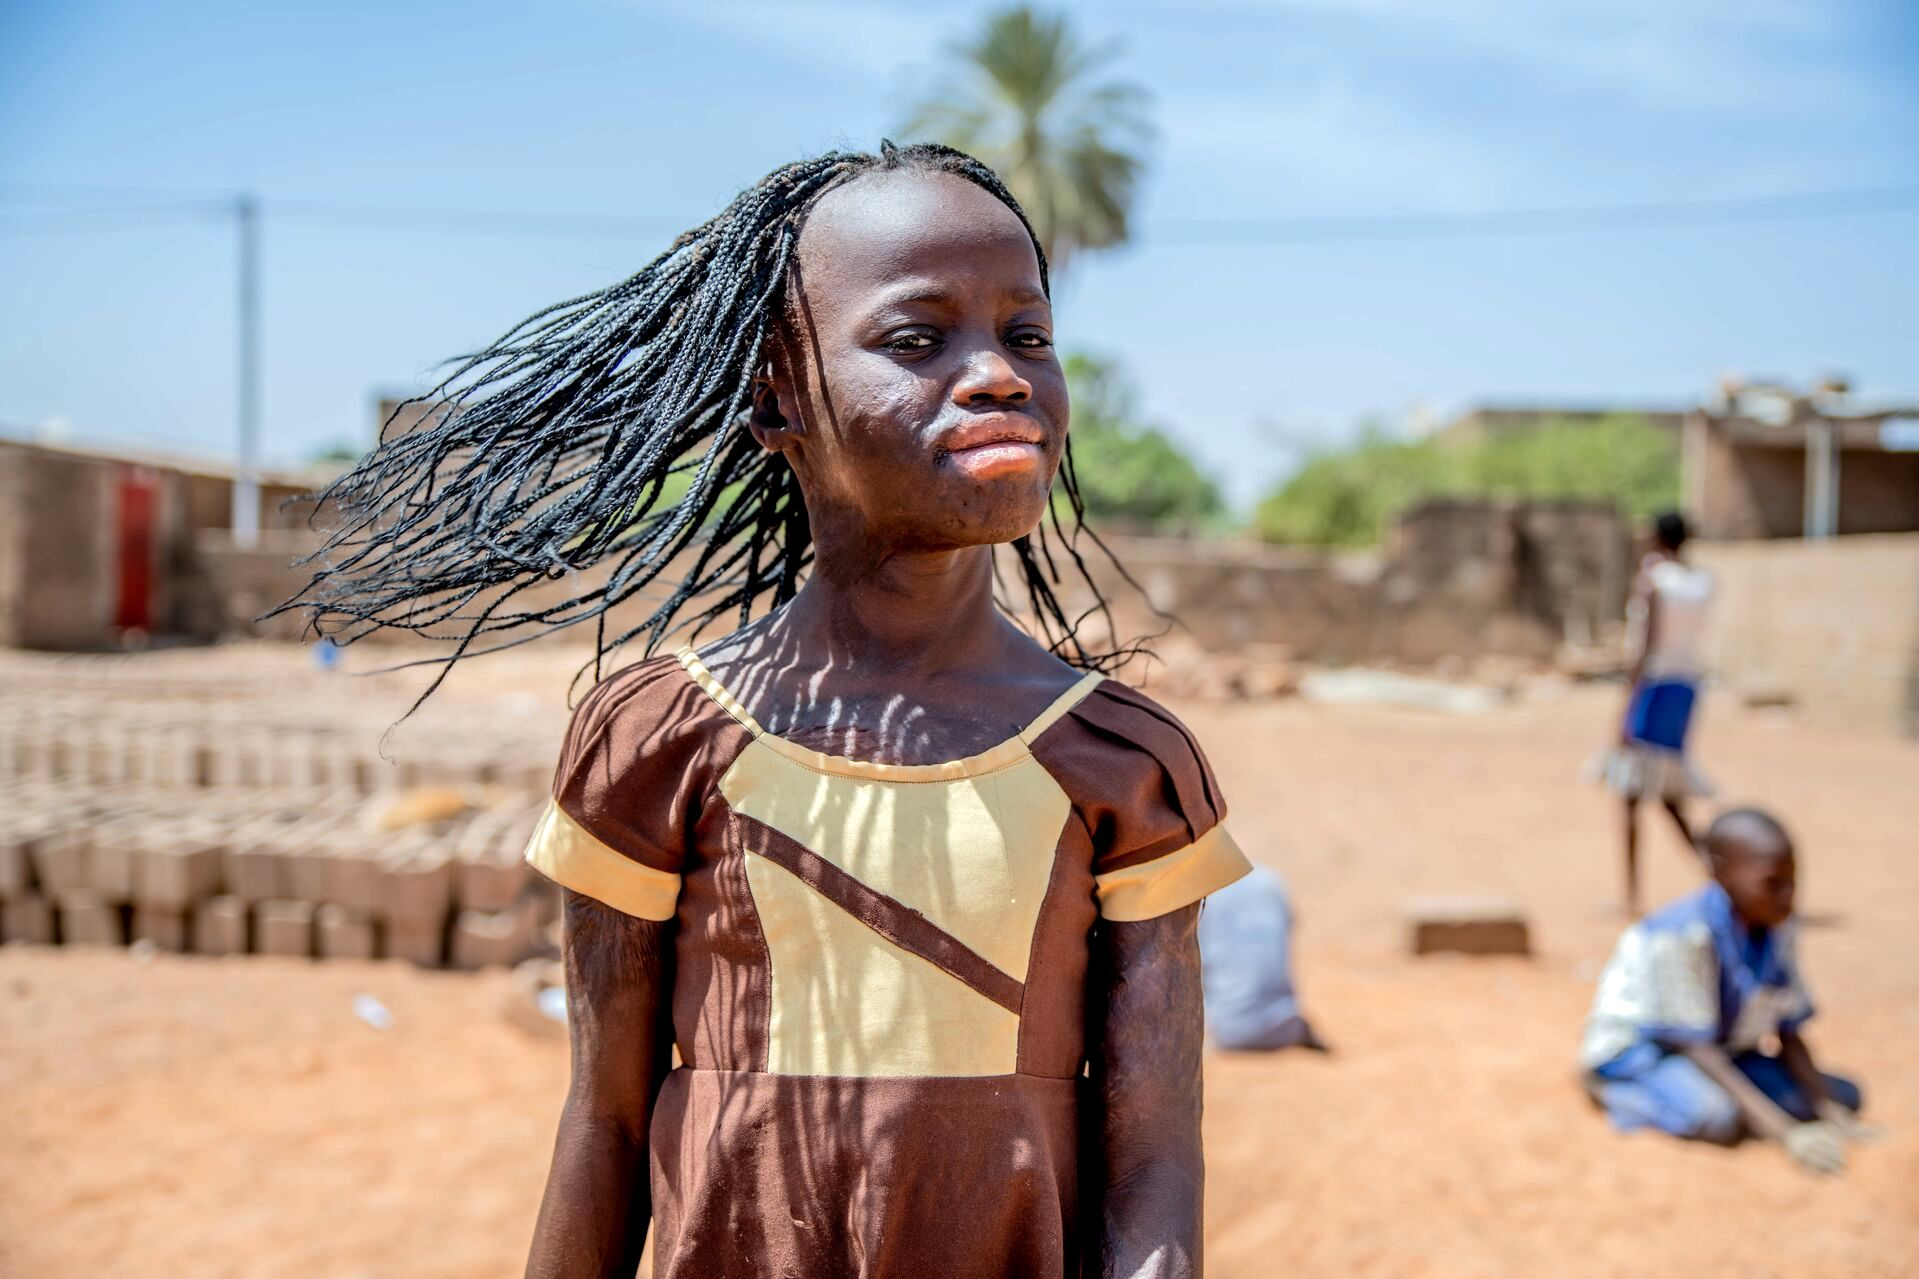 Girl wearing a brown dress turns her head and looks at the camera with confidence. Her hair is flowing in the wind.